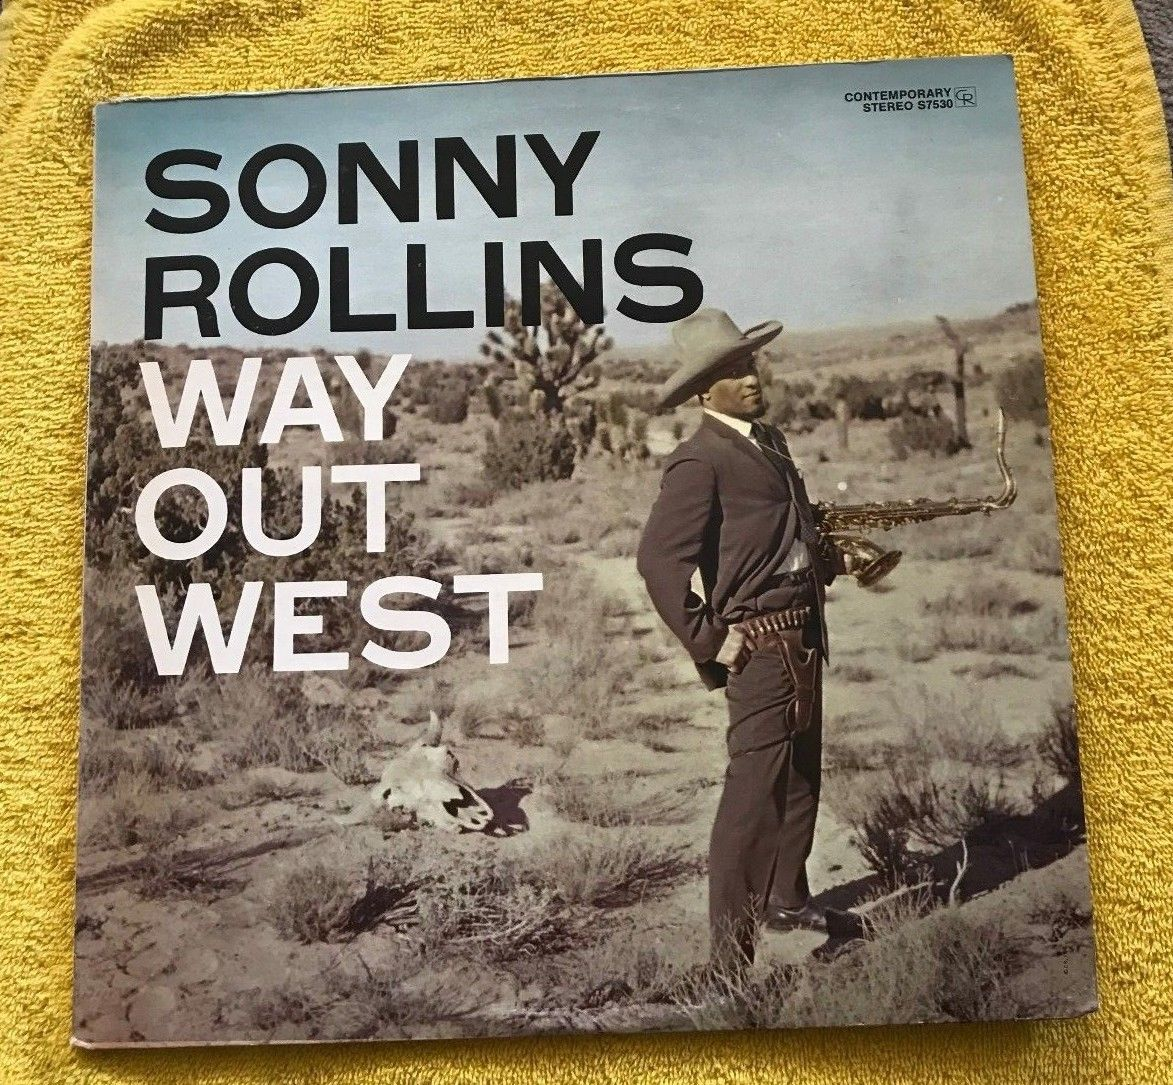 Sonny Rollins - Way Out West LP - Contemporary Records - S7530 Stereo Record